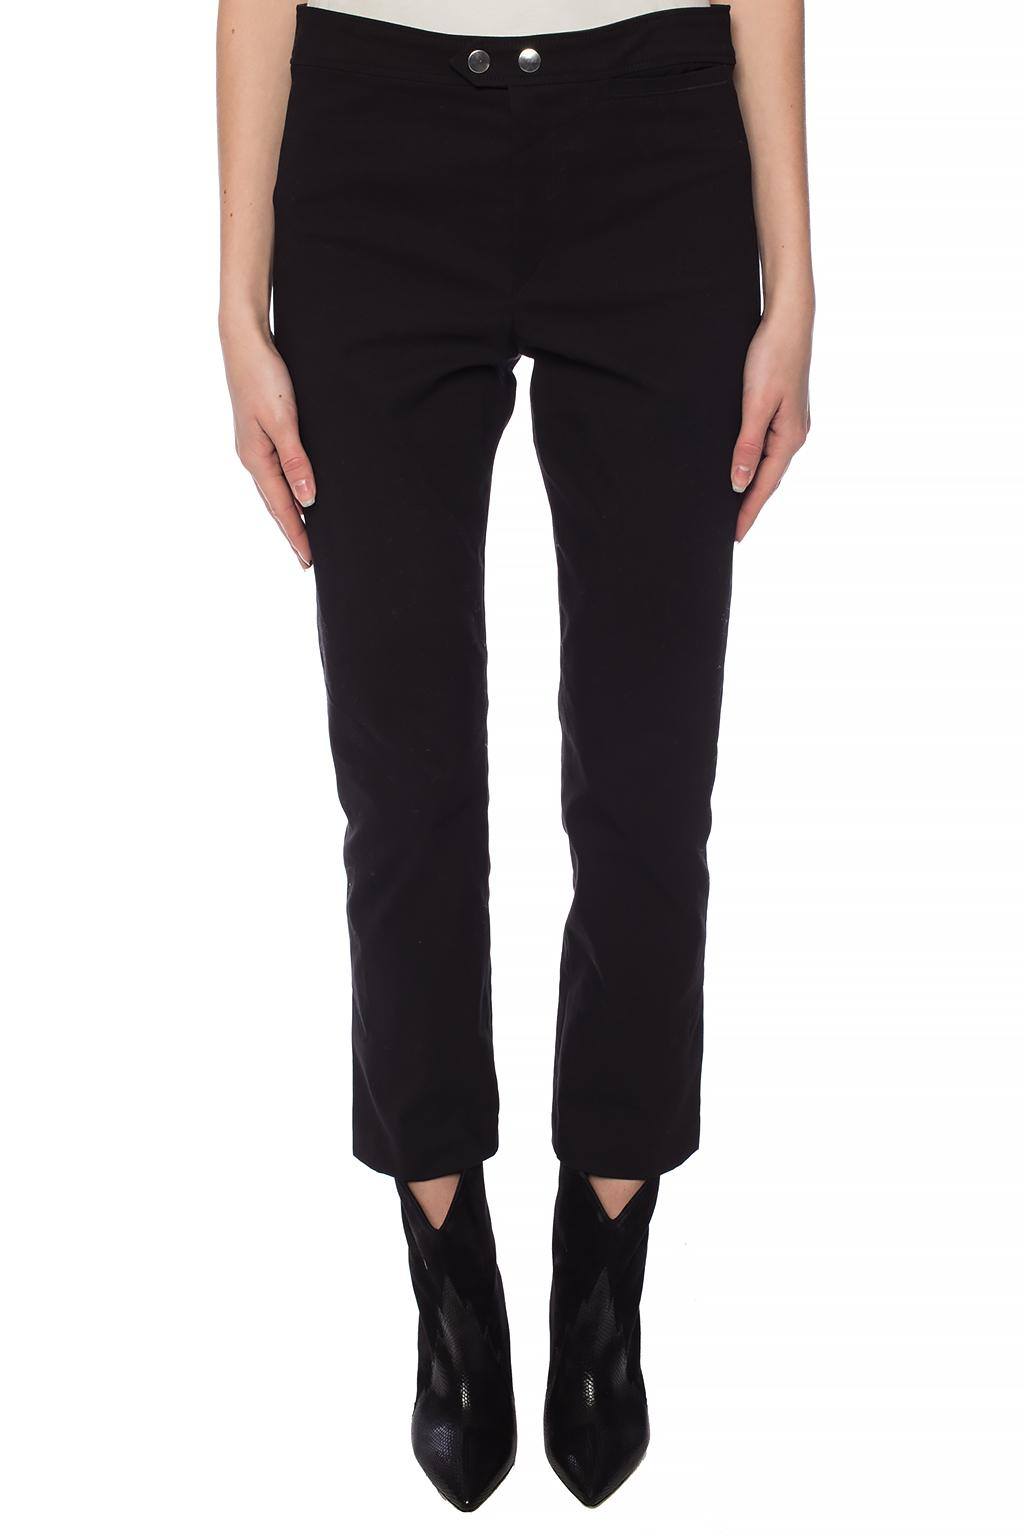 Isabel Marant Tapered leg trousers